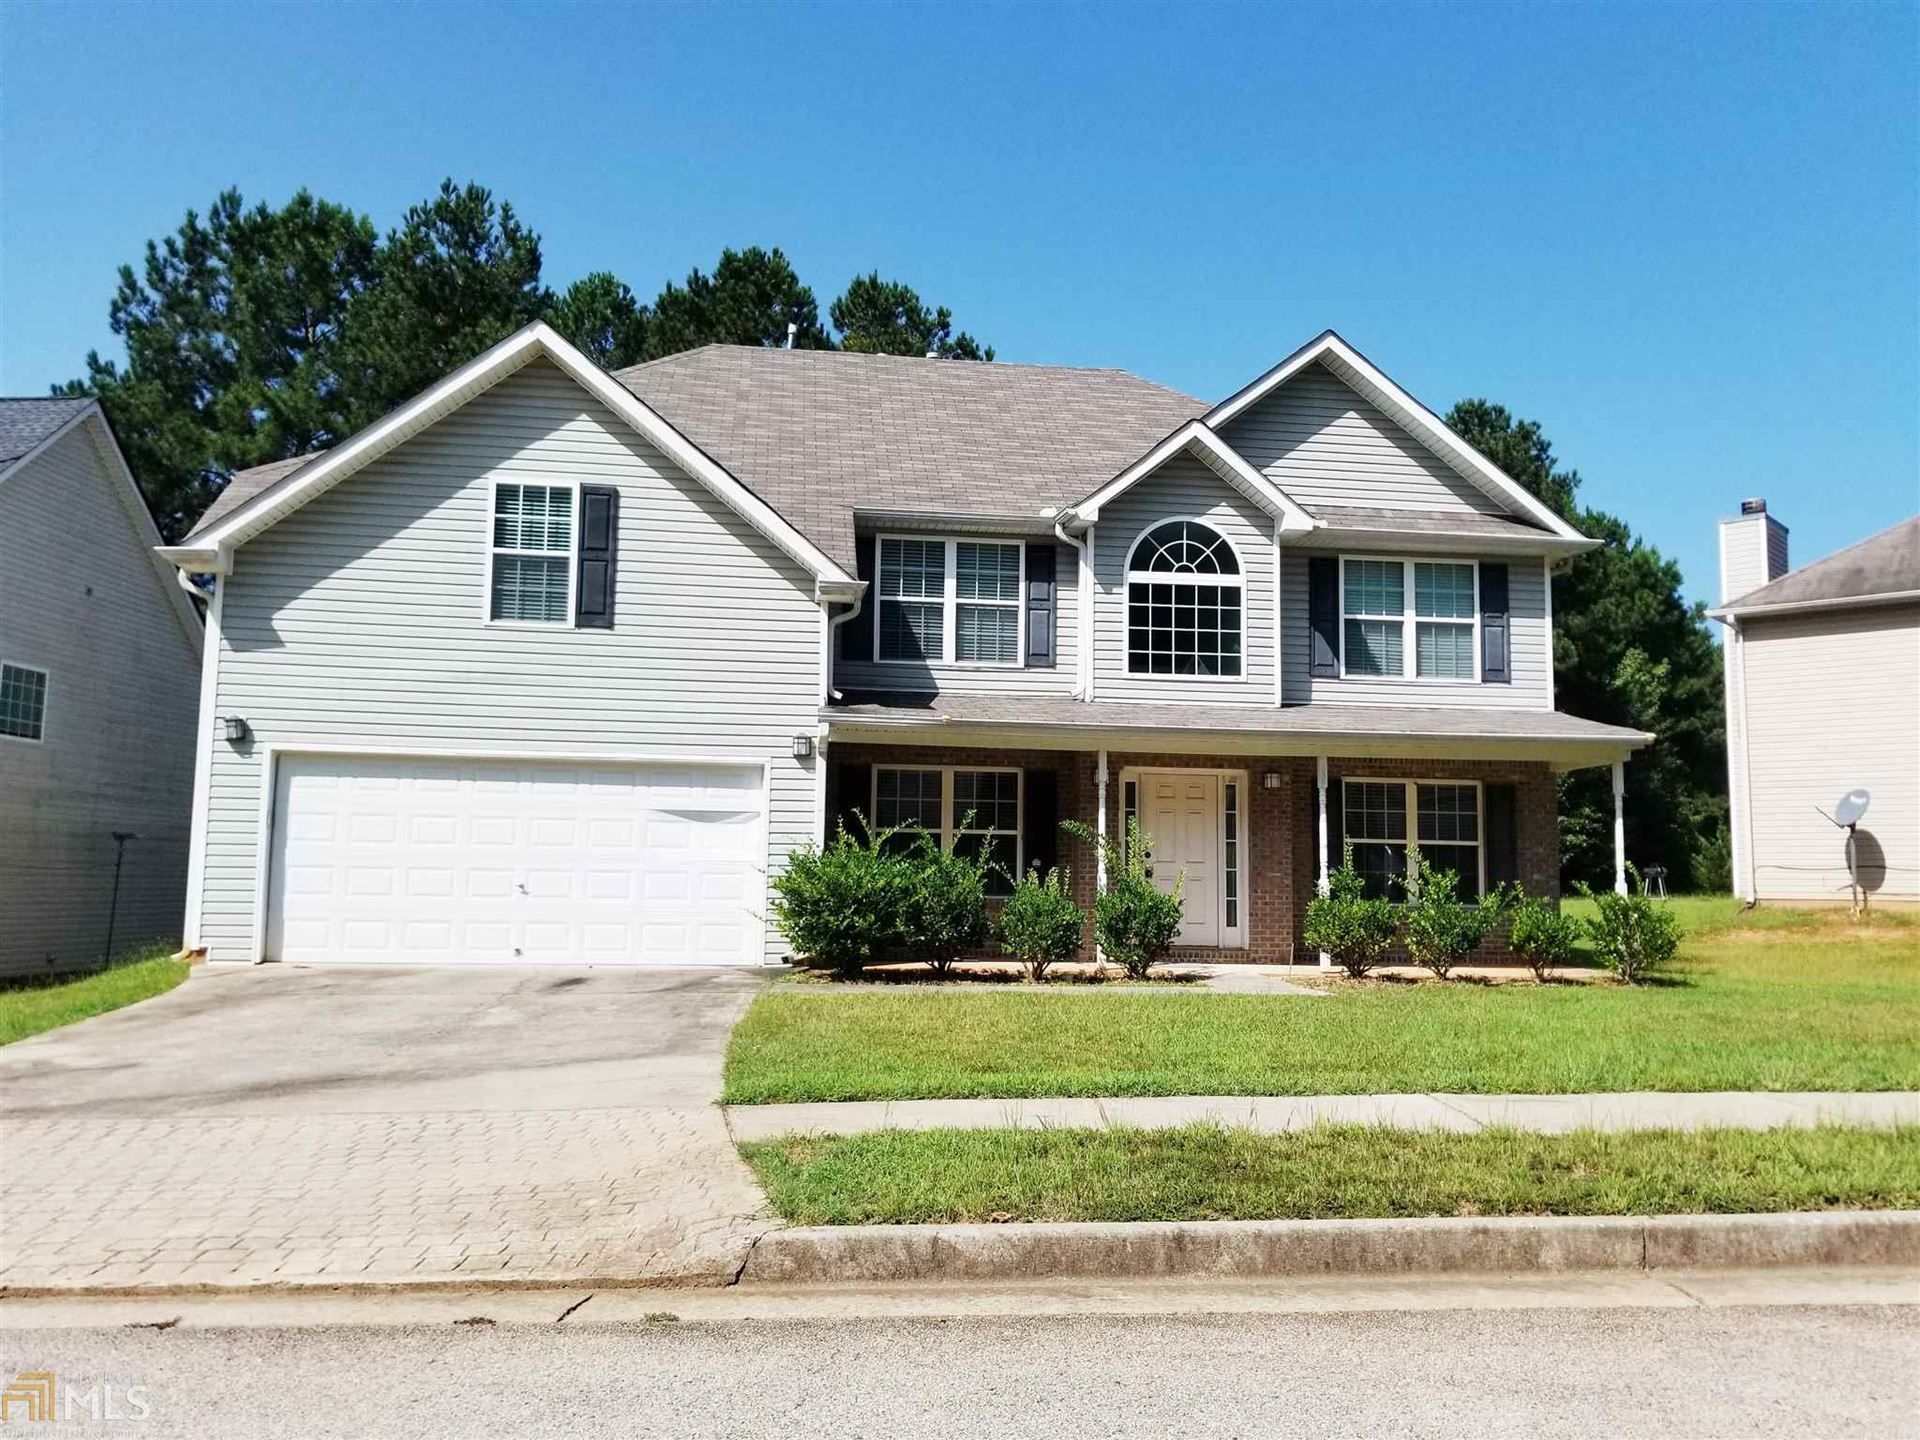 1145 Oak Hollow Ln, Hampton, GA 30228 - #: 8859251